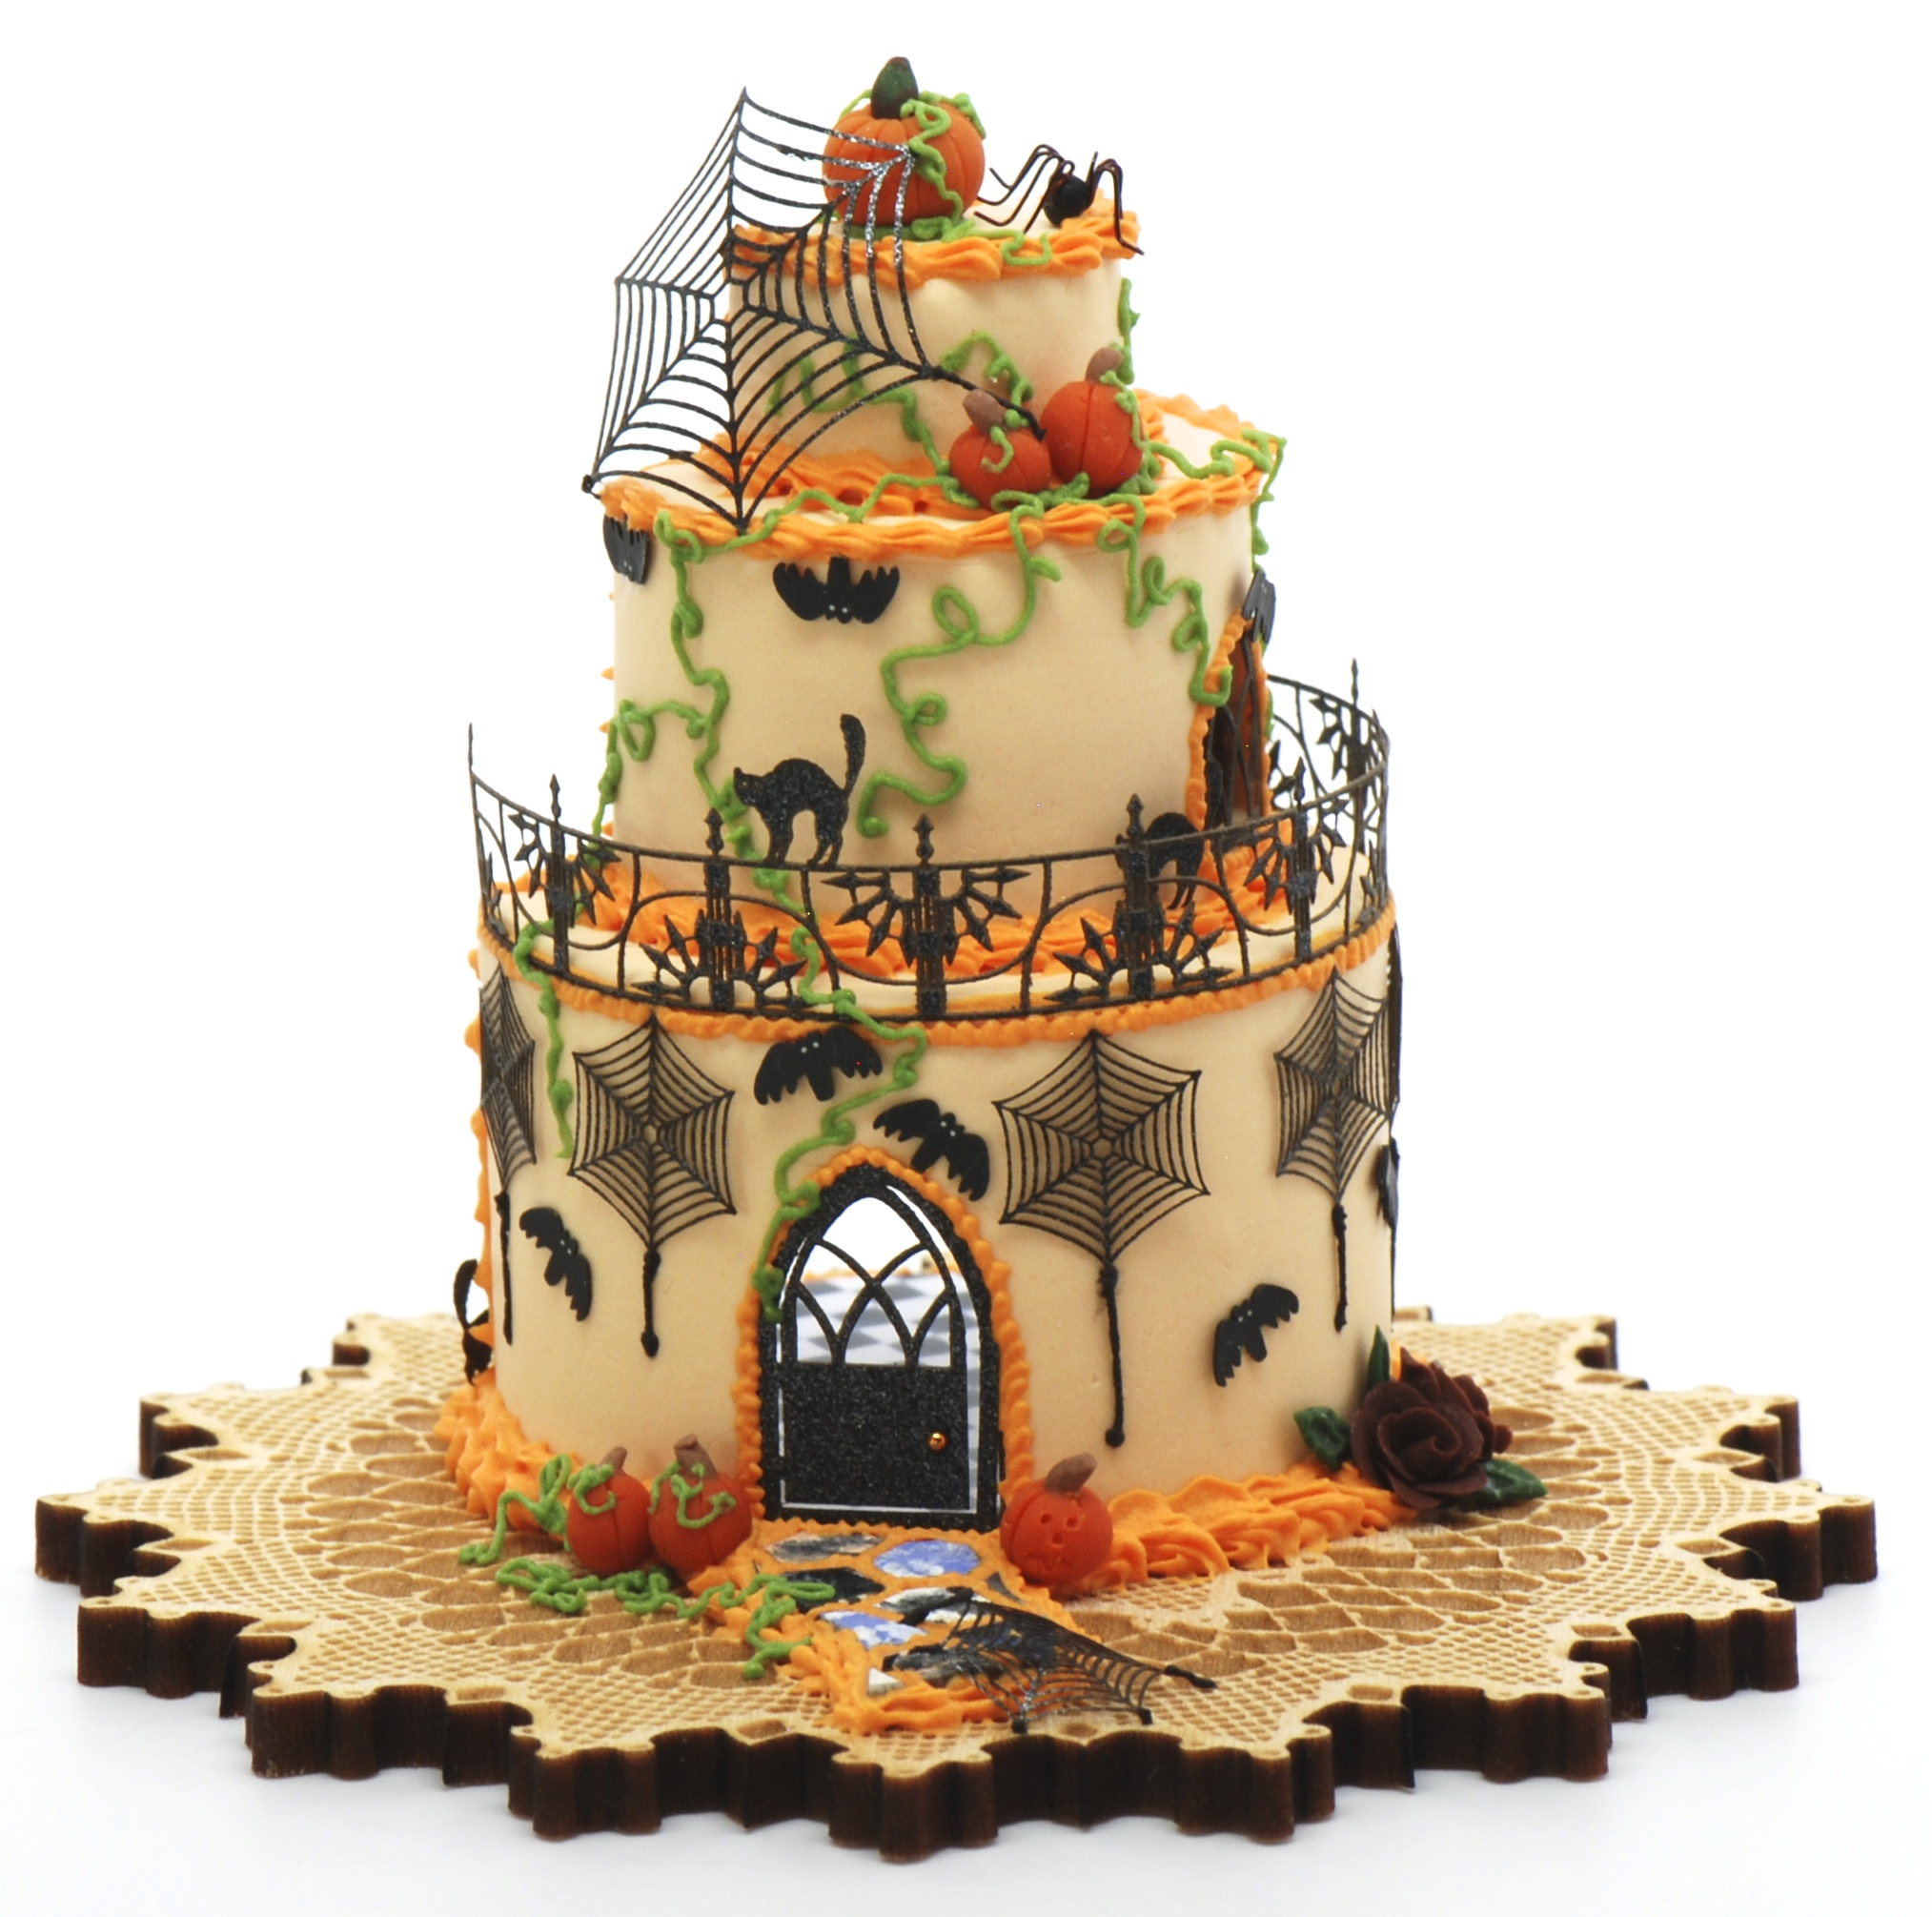 Cake House On A Farm